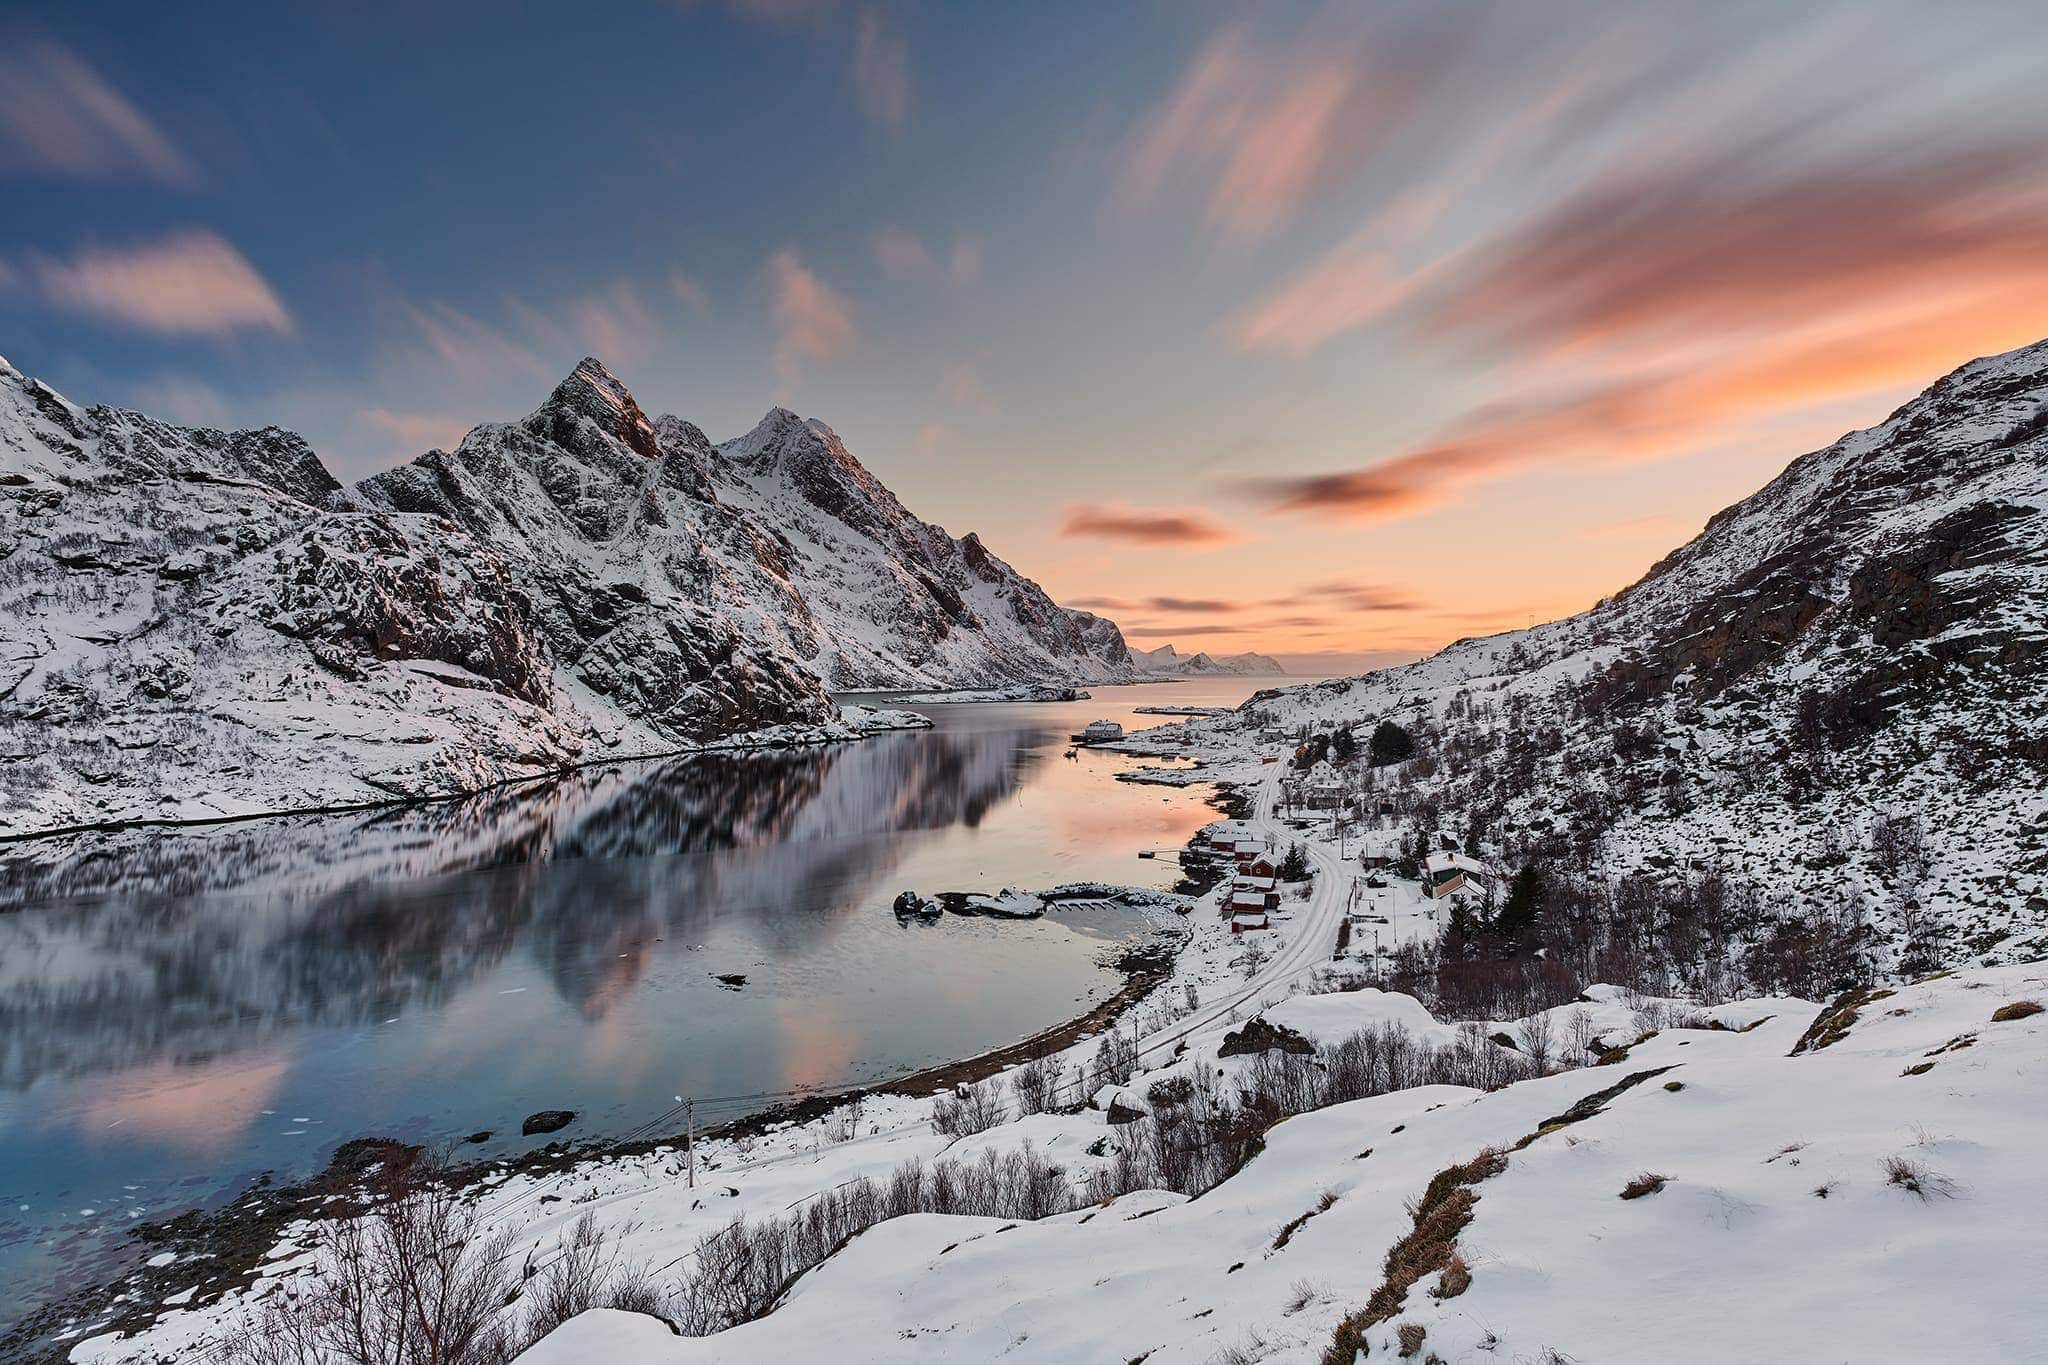 lofoten photography workshop 2021 francesco gola